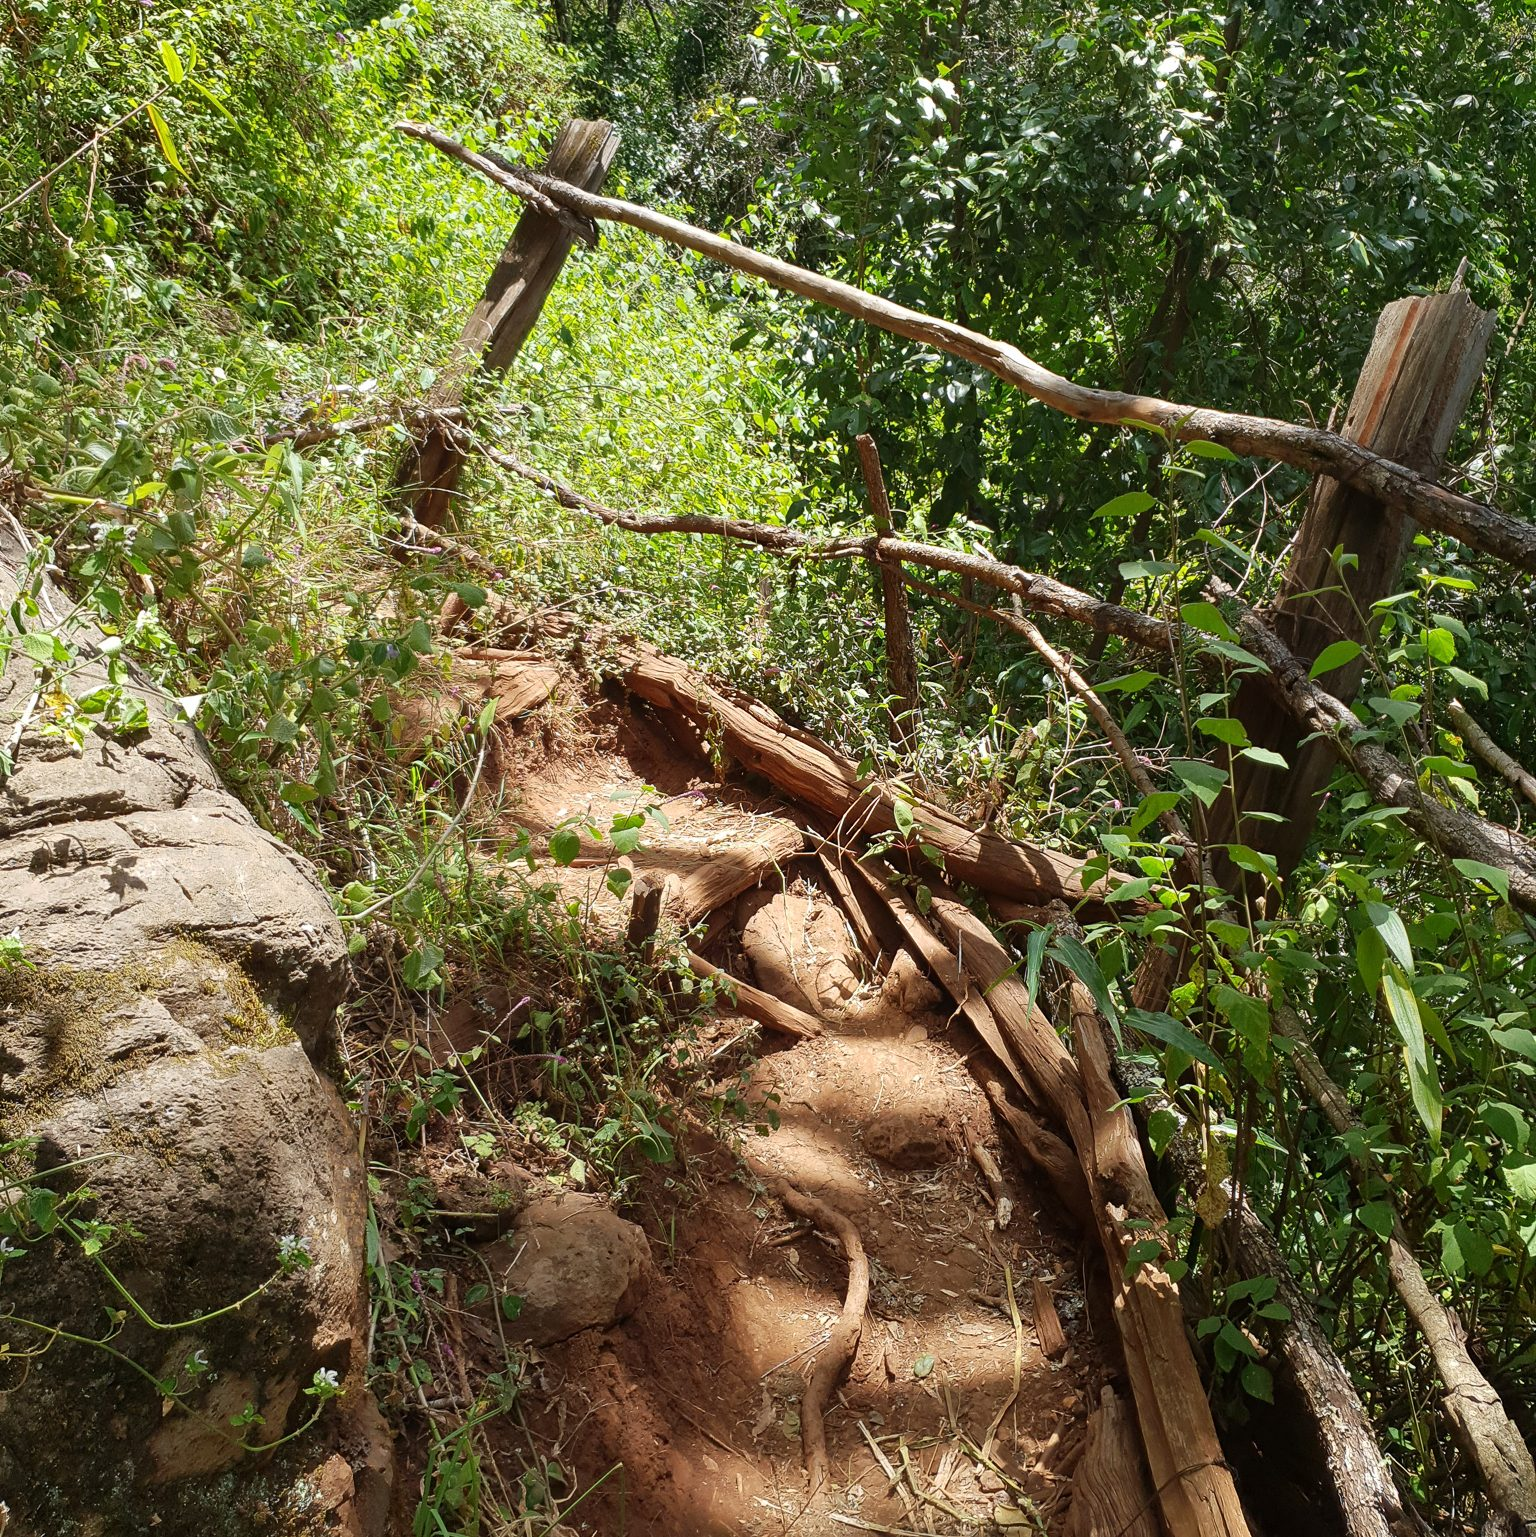 Ngare Ndare Forest trail